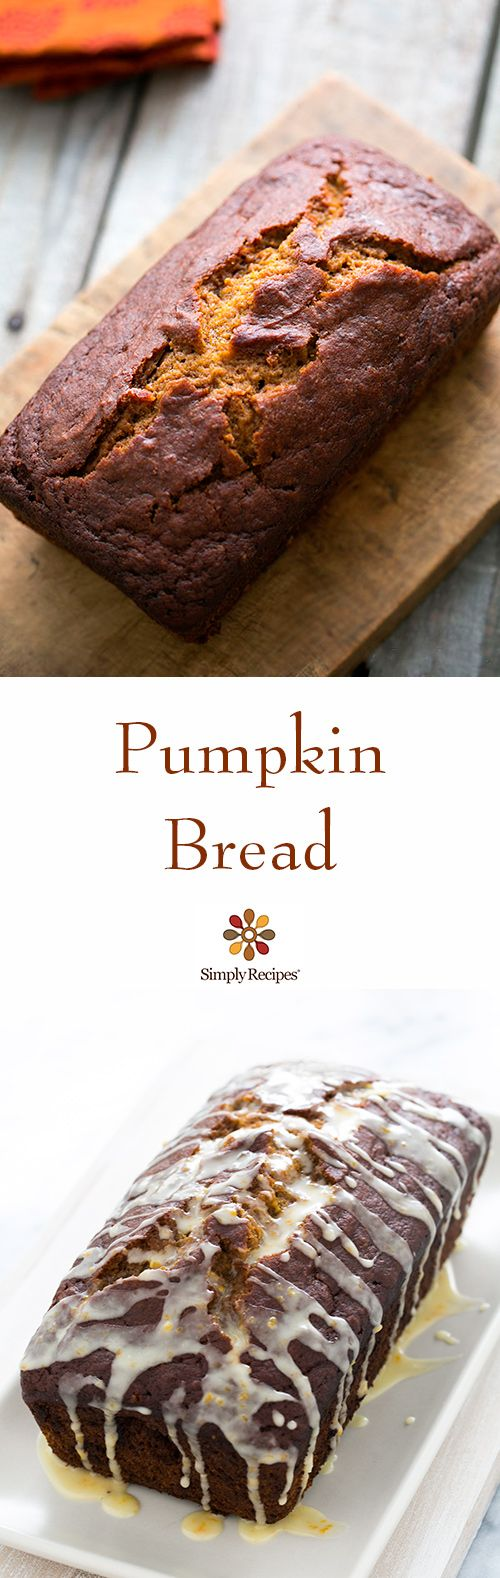 A favorite during Halloween season and Thanksgiving—Pumpkin Bread, with pumpkin spice, ginger, and optional citrus glaze. On SimplyRecipes.com #dessert #snack